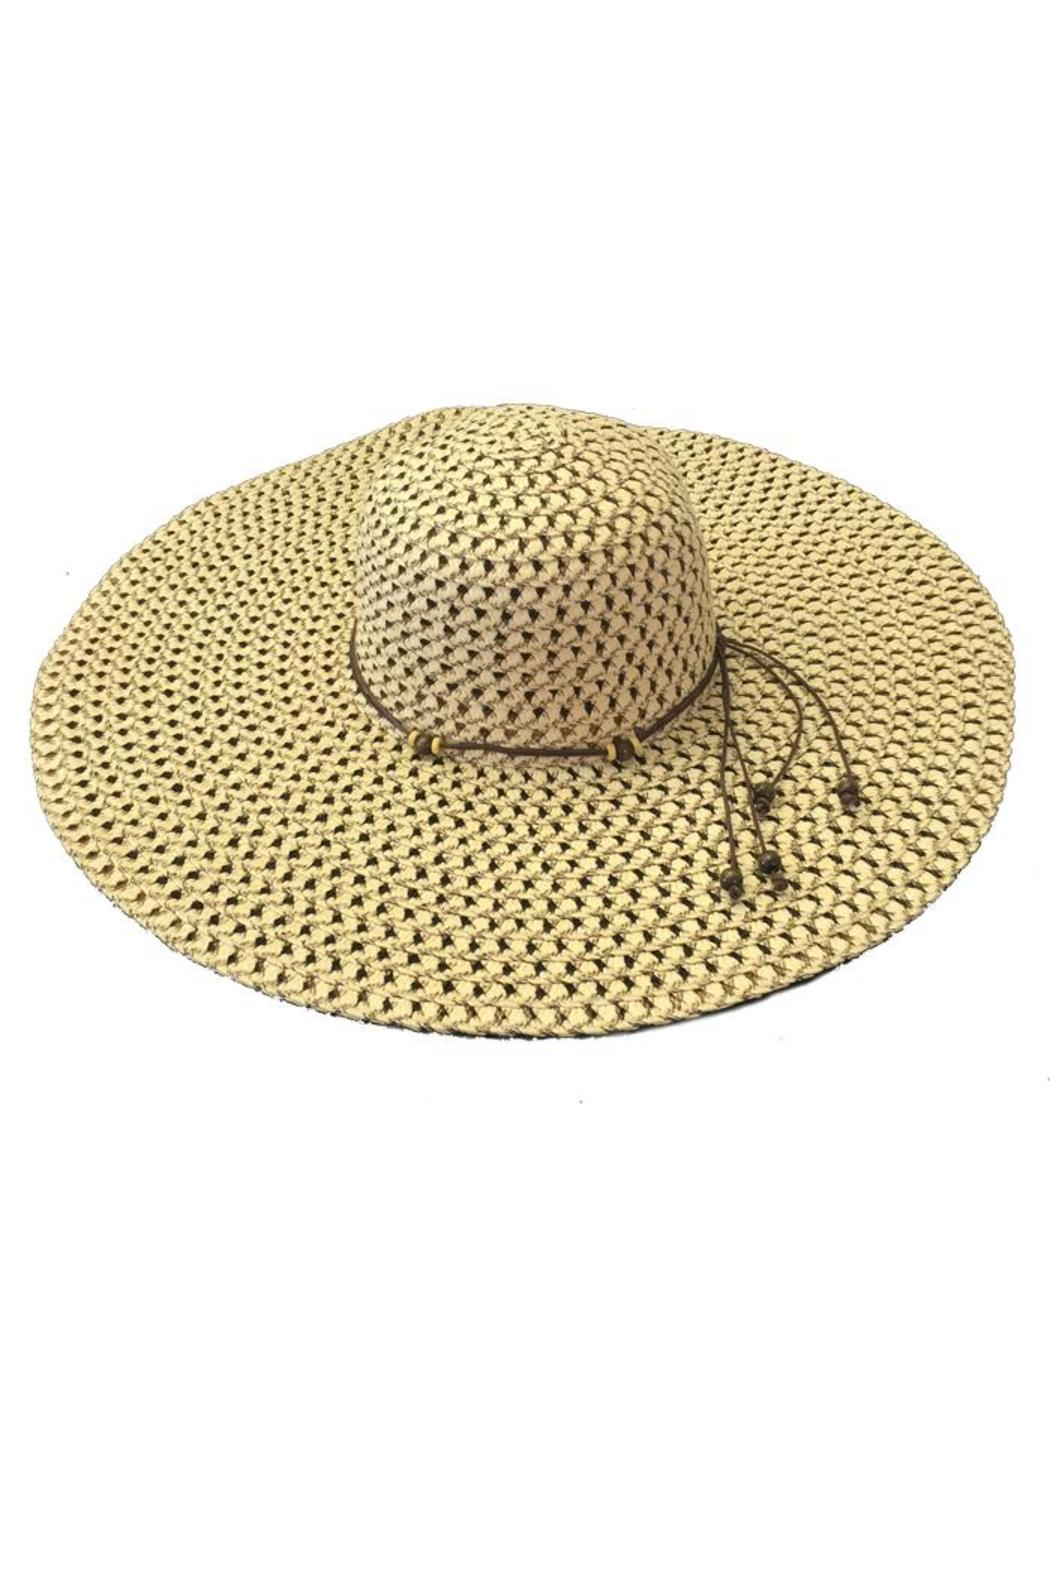 tu-anh boutique Tan Rope-Band Sunhat - Front Cropped Image